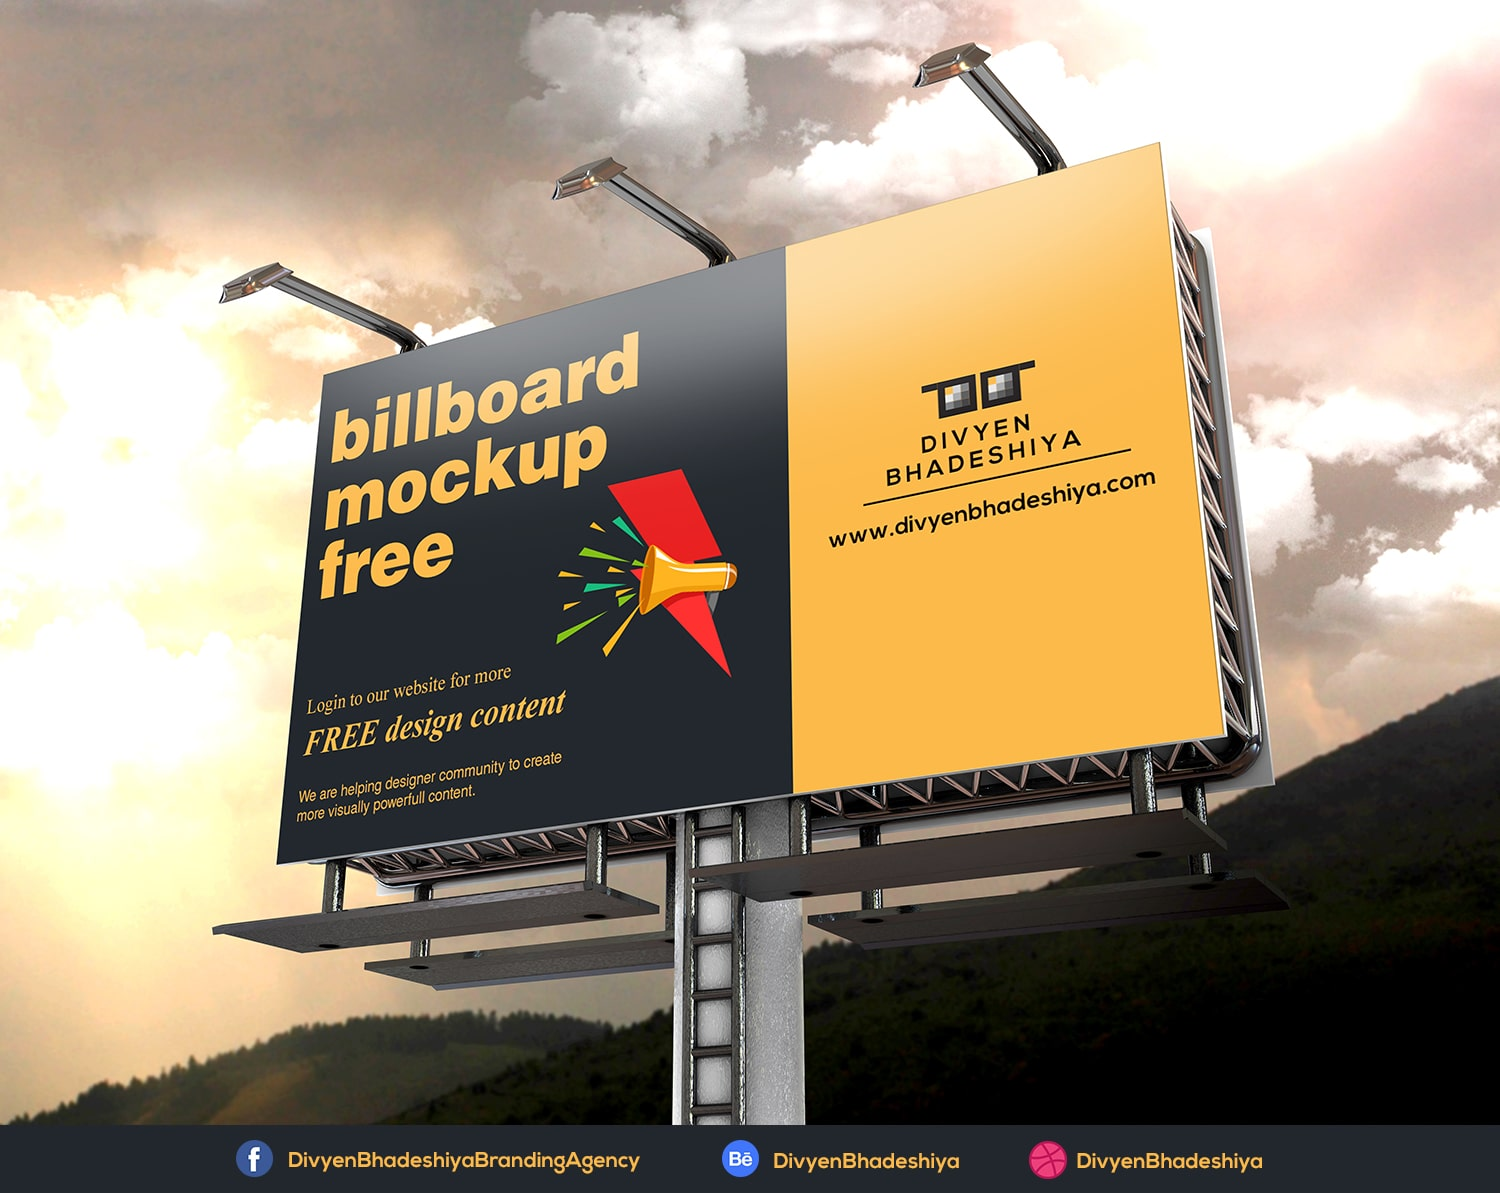 Billboard Mockup 04 PSD Free Download